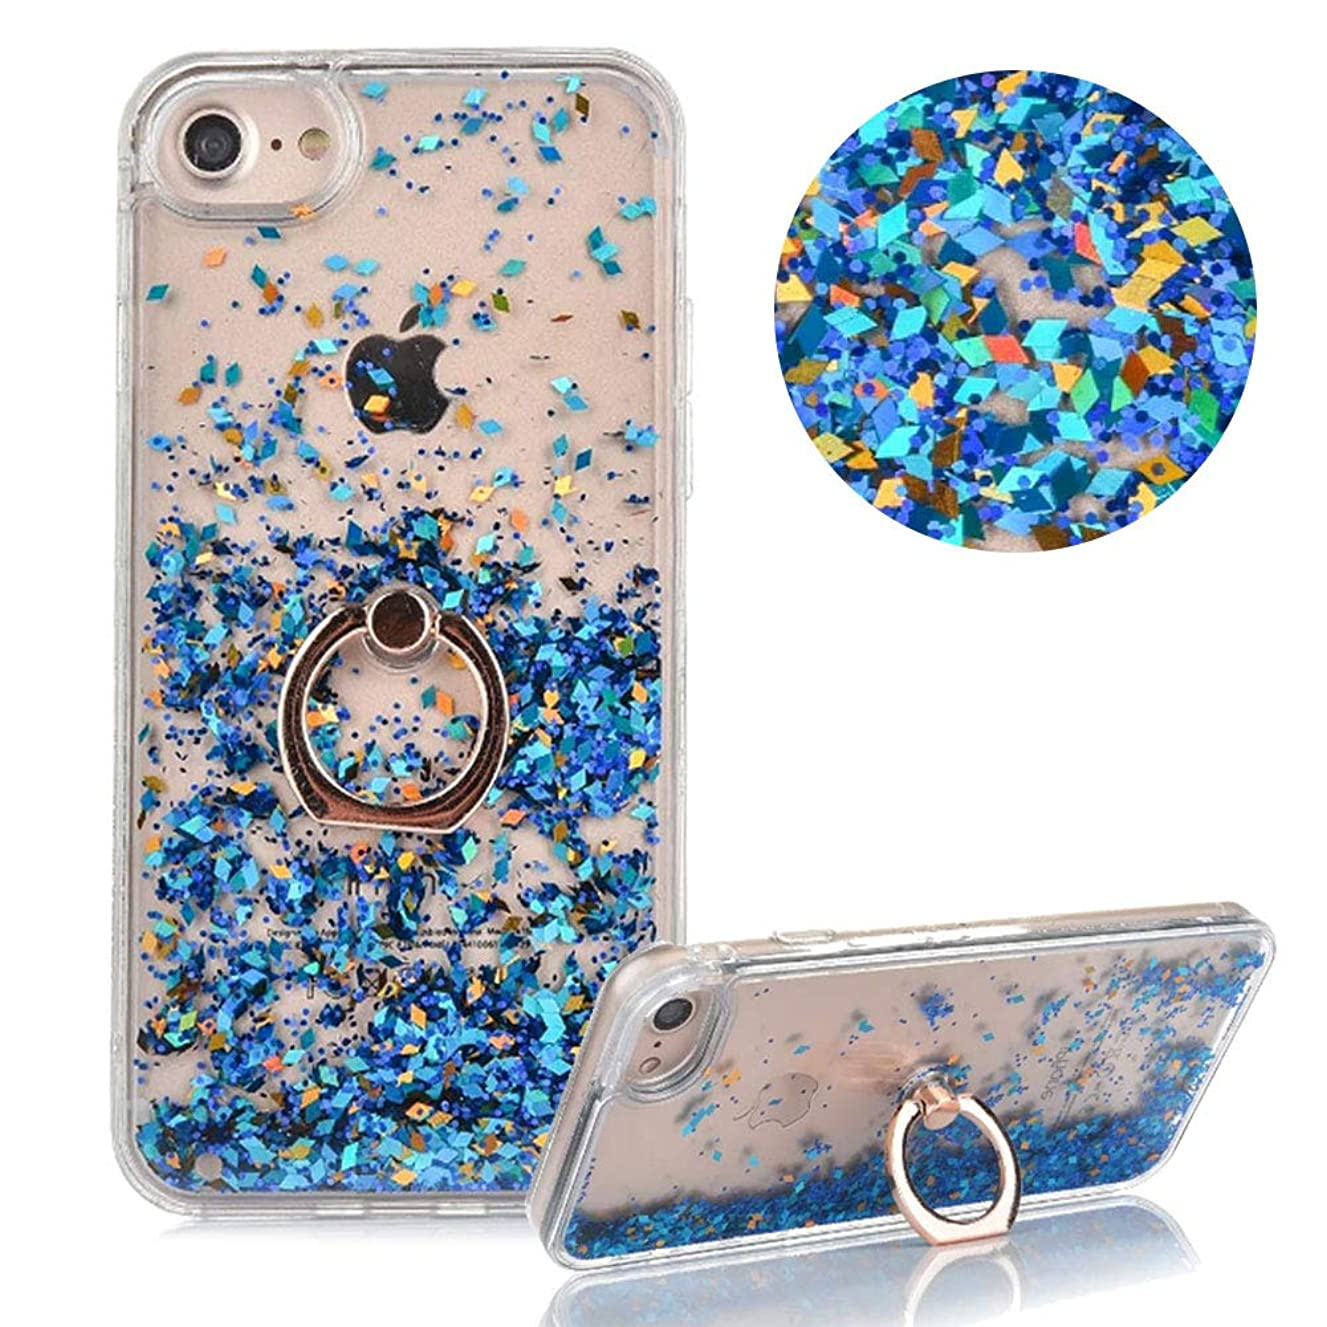 Hard Plastic Case for iPhone 6 Plus,Glitter Liquid Case for iPhone 6S Plus,Moiky Luxury Blue Diamond Quicksand Glitter Sequins with 360 Degrees Stand Ring Holder Slim Plastic Case